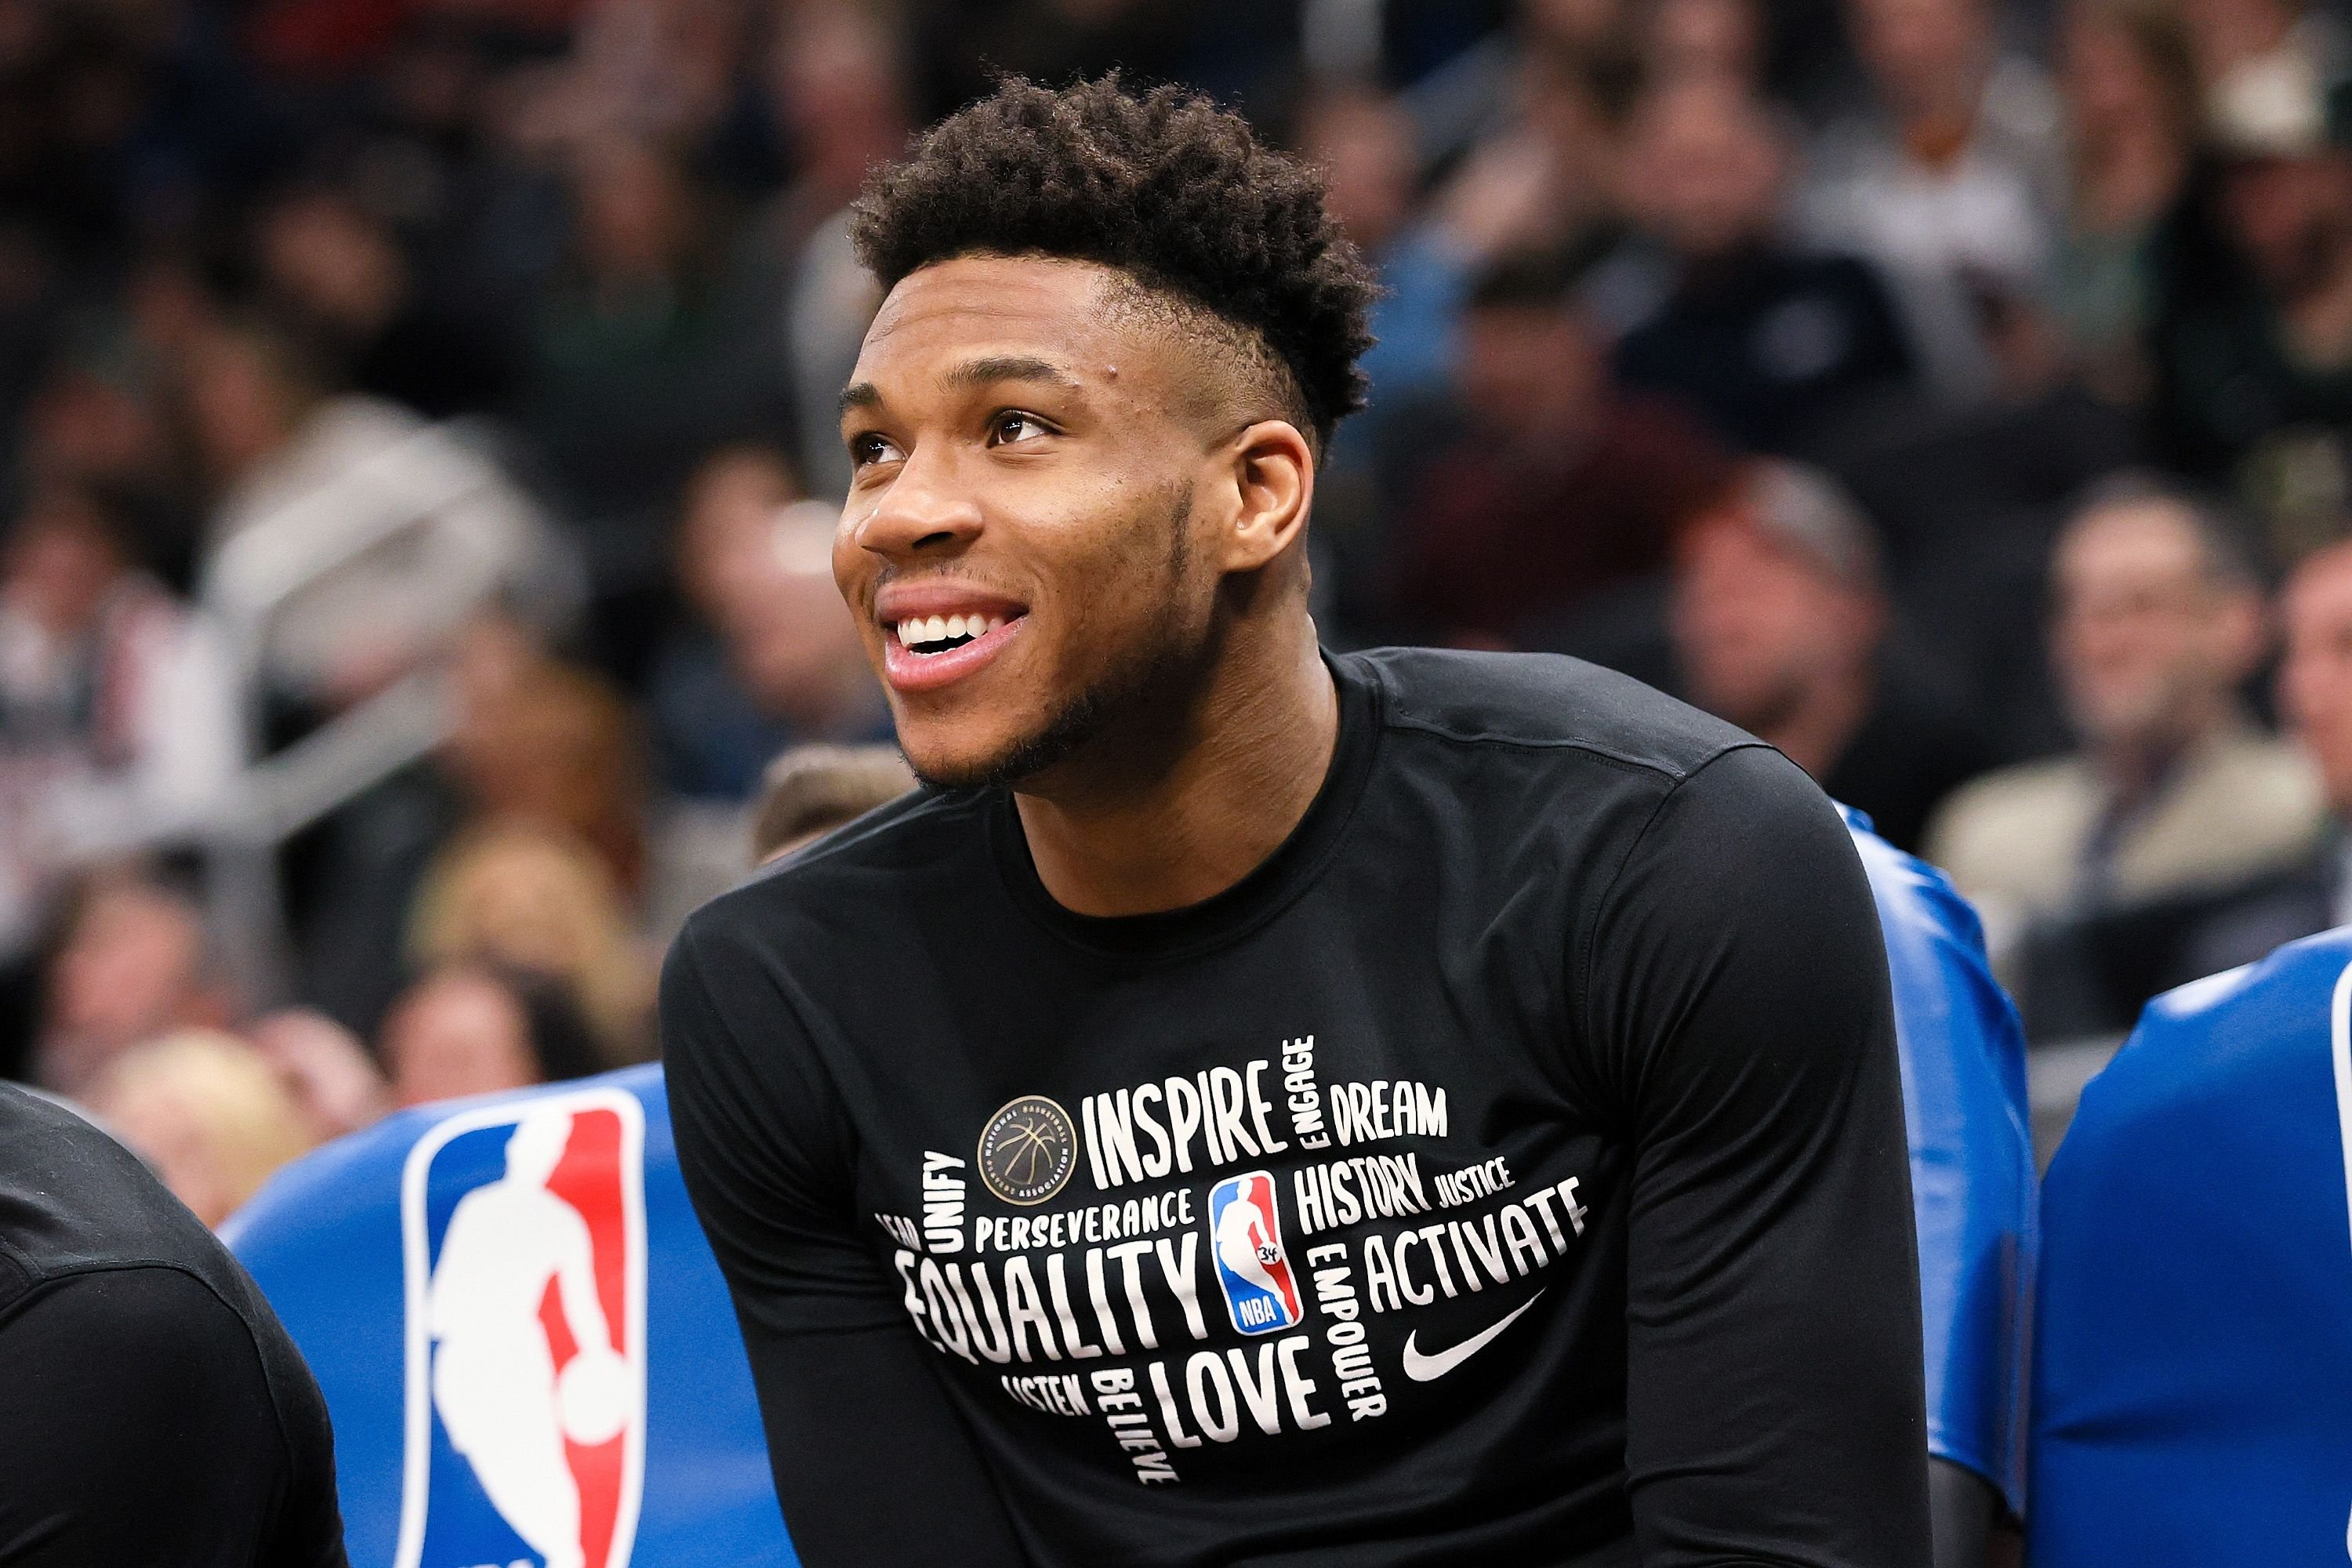 Giannis Antetokounmpo, #34 of the Milwaukee Bucks looks on from the bench in the fourth quarter against the Oklahoma City Thunder at the Fiserv Forum on February 28, 2020 in Milwaukee, Wisconsin | Photo: Getty Images